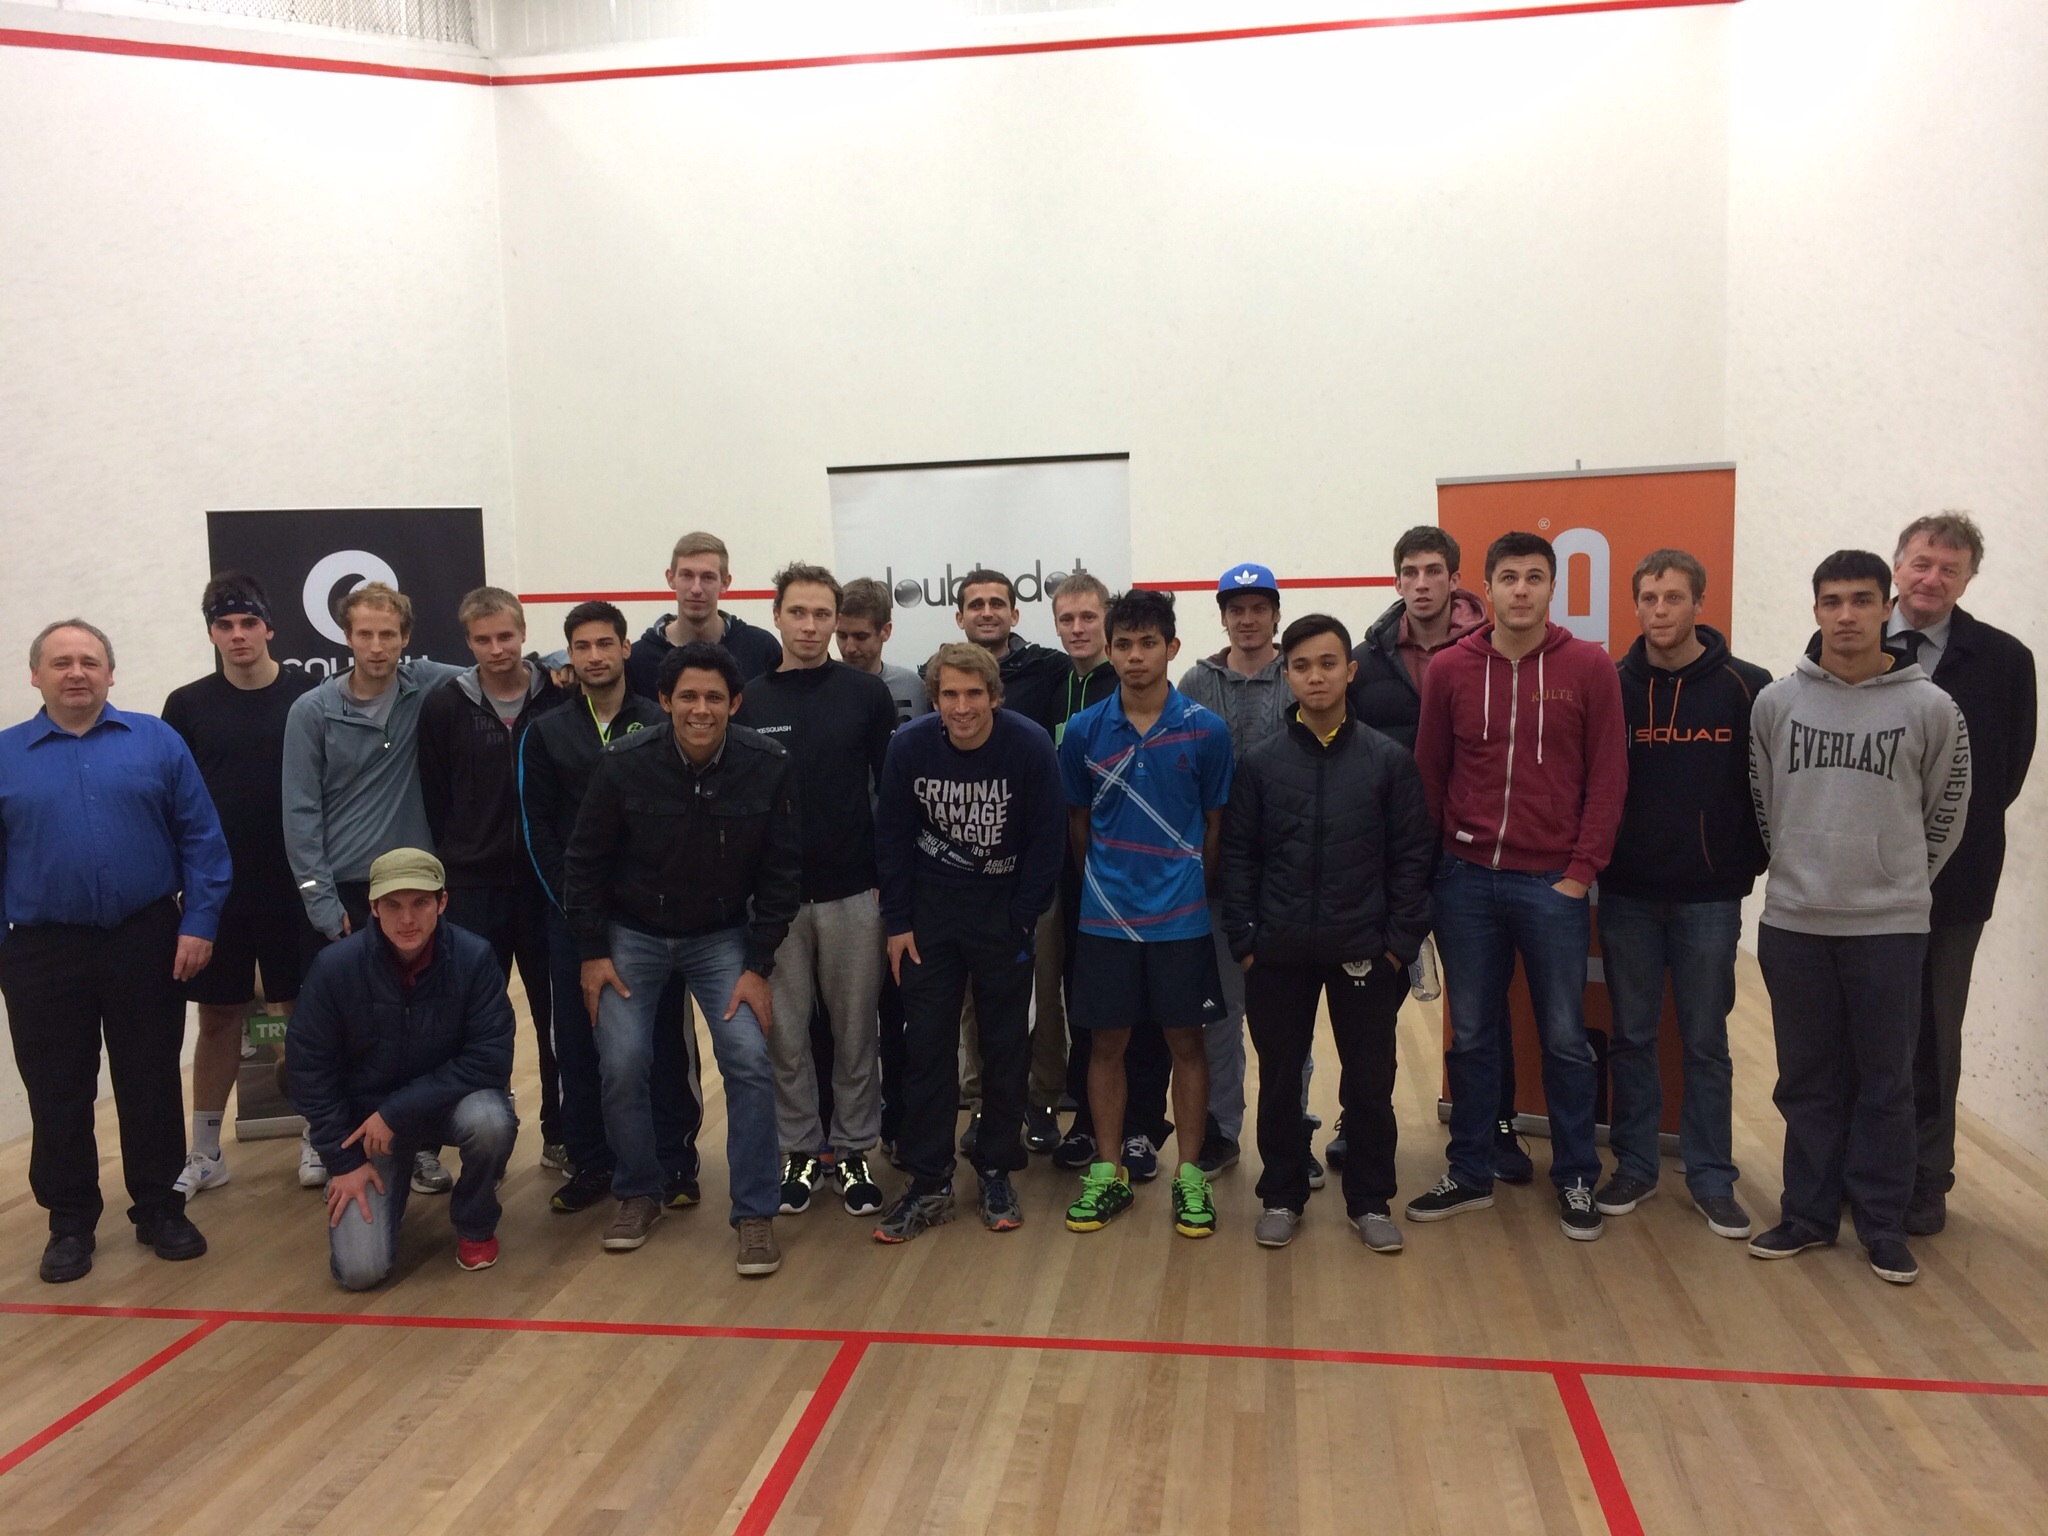 The players in the 2014 DoubleDot Media Christchurch Open. Players came from New Zealand, USA, Czech Republic, Finland, South Africa, England, Brazil, France, Malaysia, Austria, and Australia